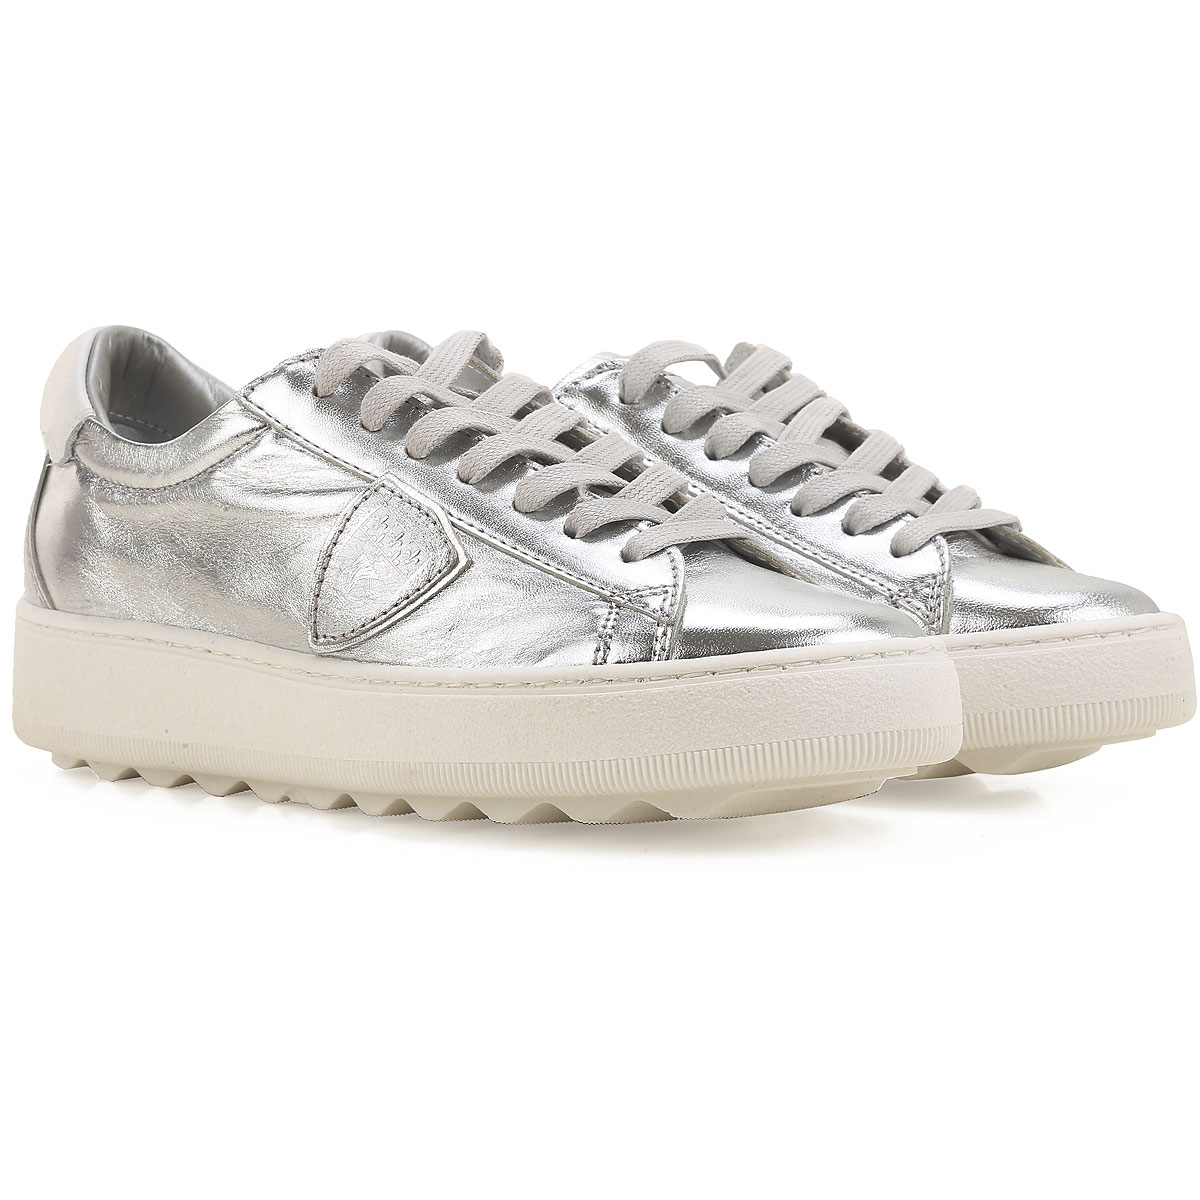 Philippe Model Sneakers for Women, Madeleine, Silver, Laminated Leather, 2019, 4.5 5.5 8.5